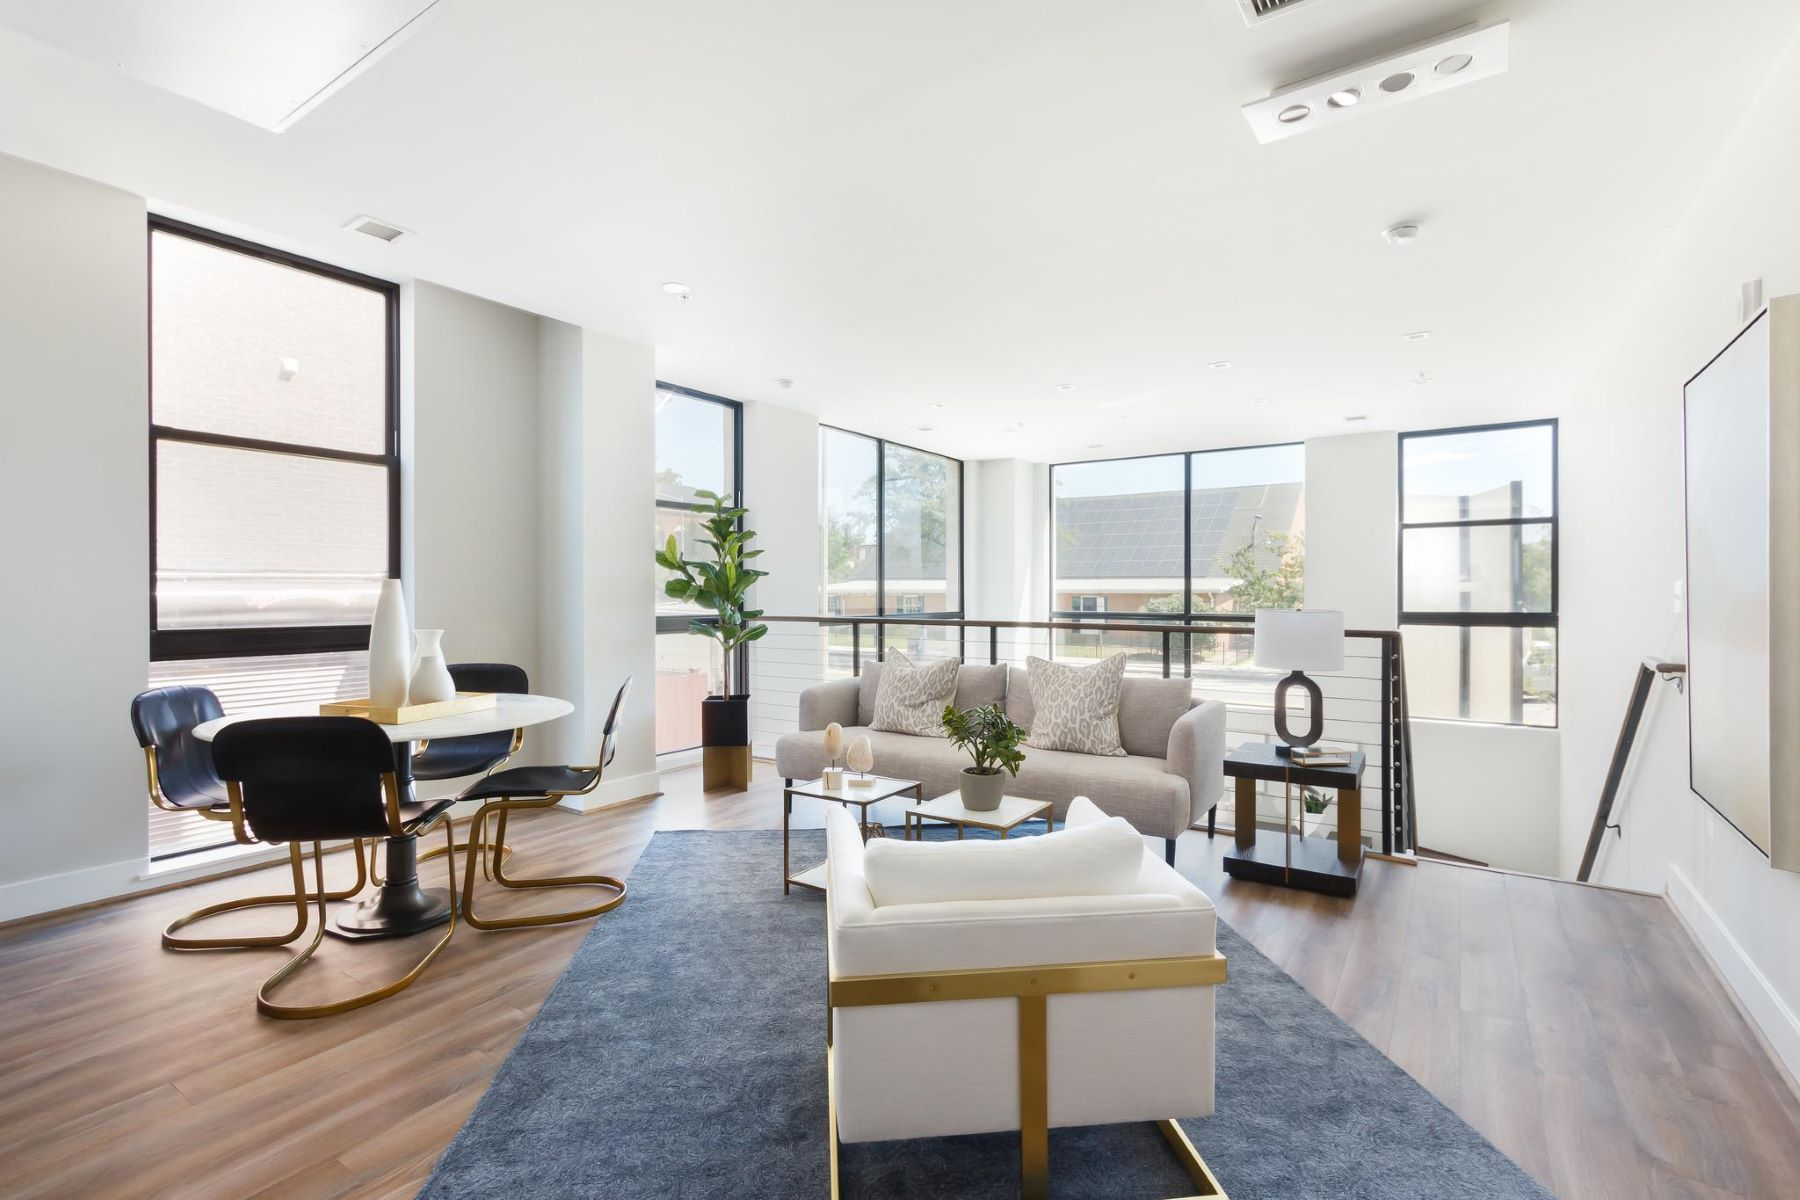 Other Residential for Sale at 1628 11th St NW #109 1628 11th St NW #109 Washington, District Of Columbia 20001 United States